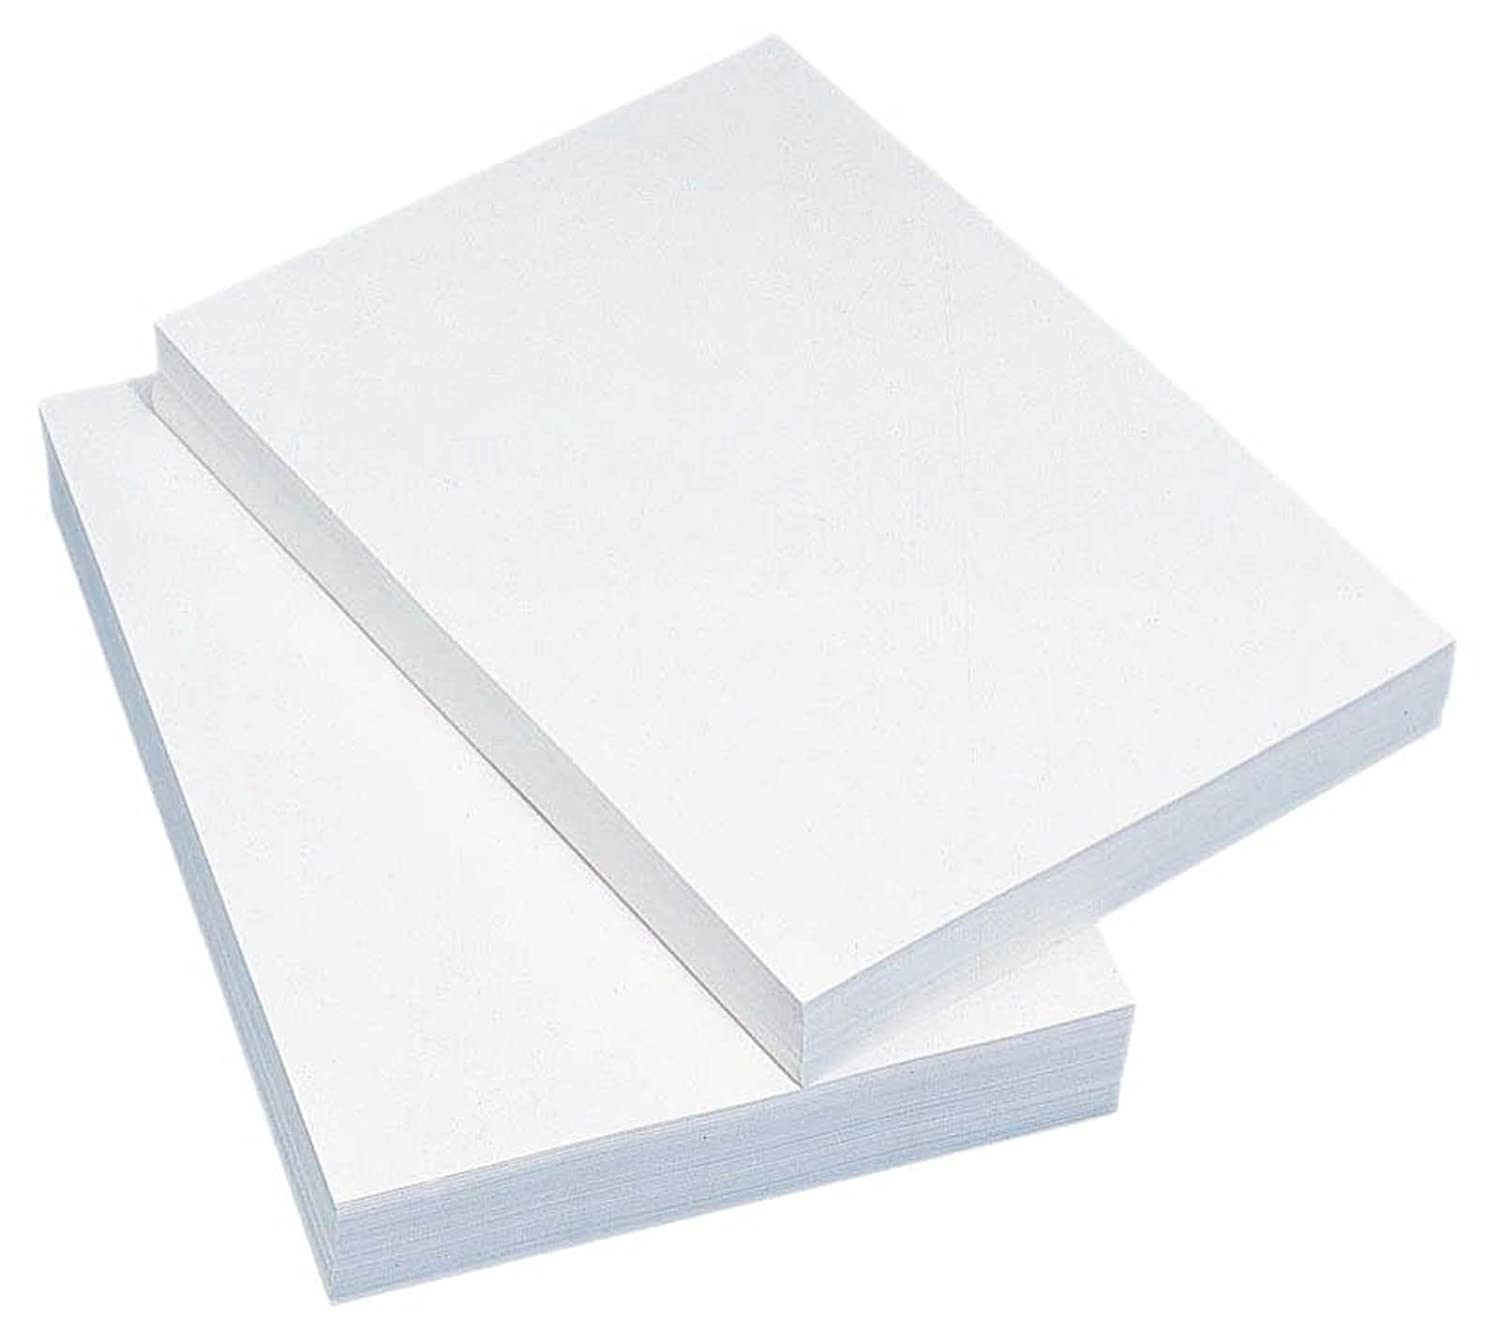 Copier Paper 2000BL/A6 White: Amazon.co.uk: Office Products